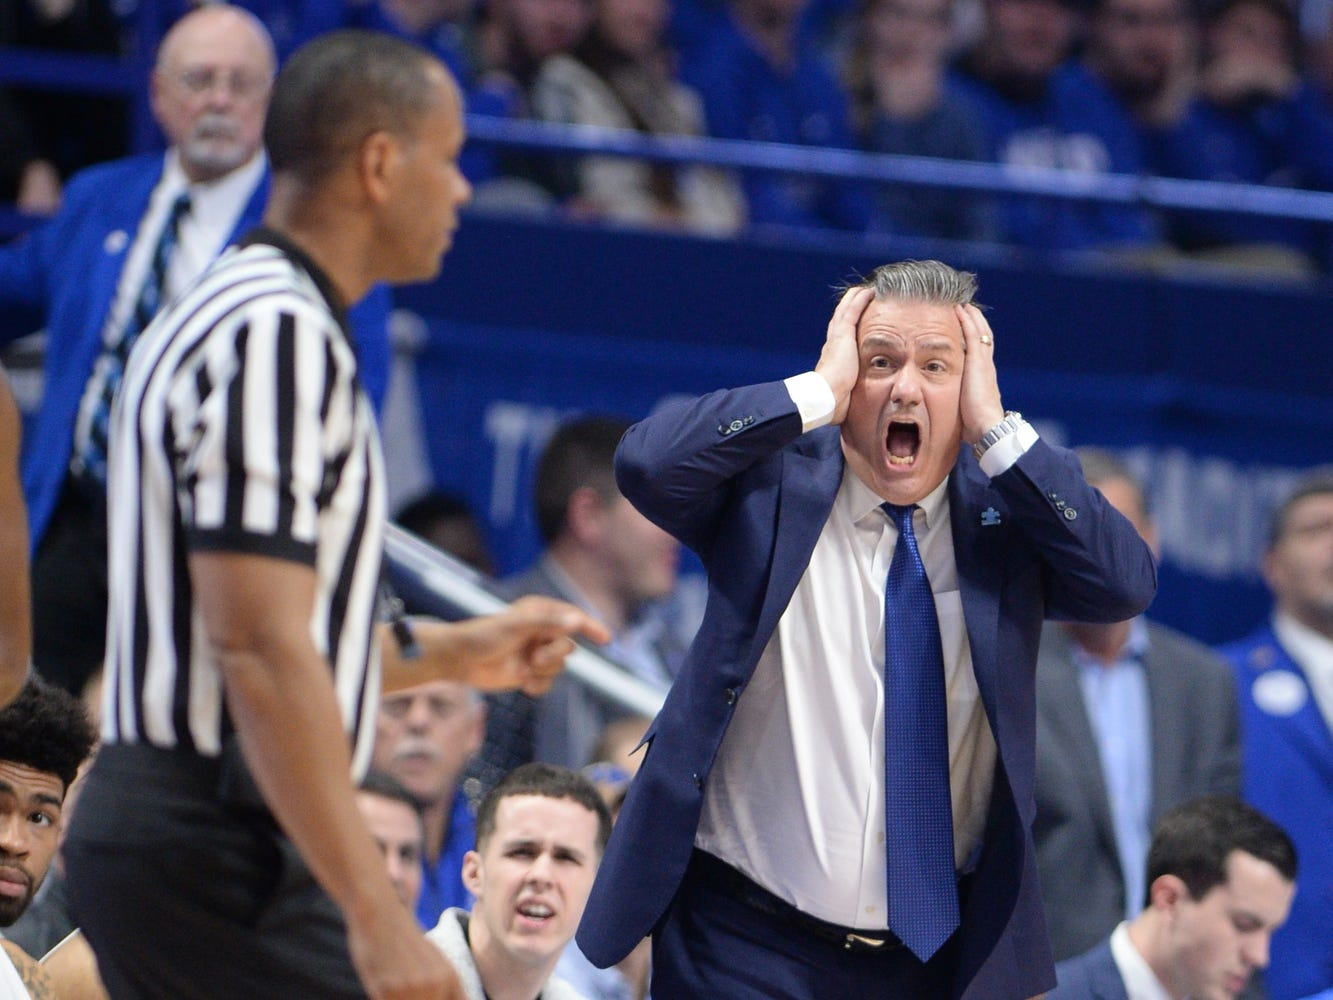 UK head coach John Calipari reacts to a call during the University of Kentucky men's basketball game against Louisiana State University at Rupp Arena on Feb. 12, 2018.